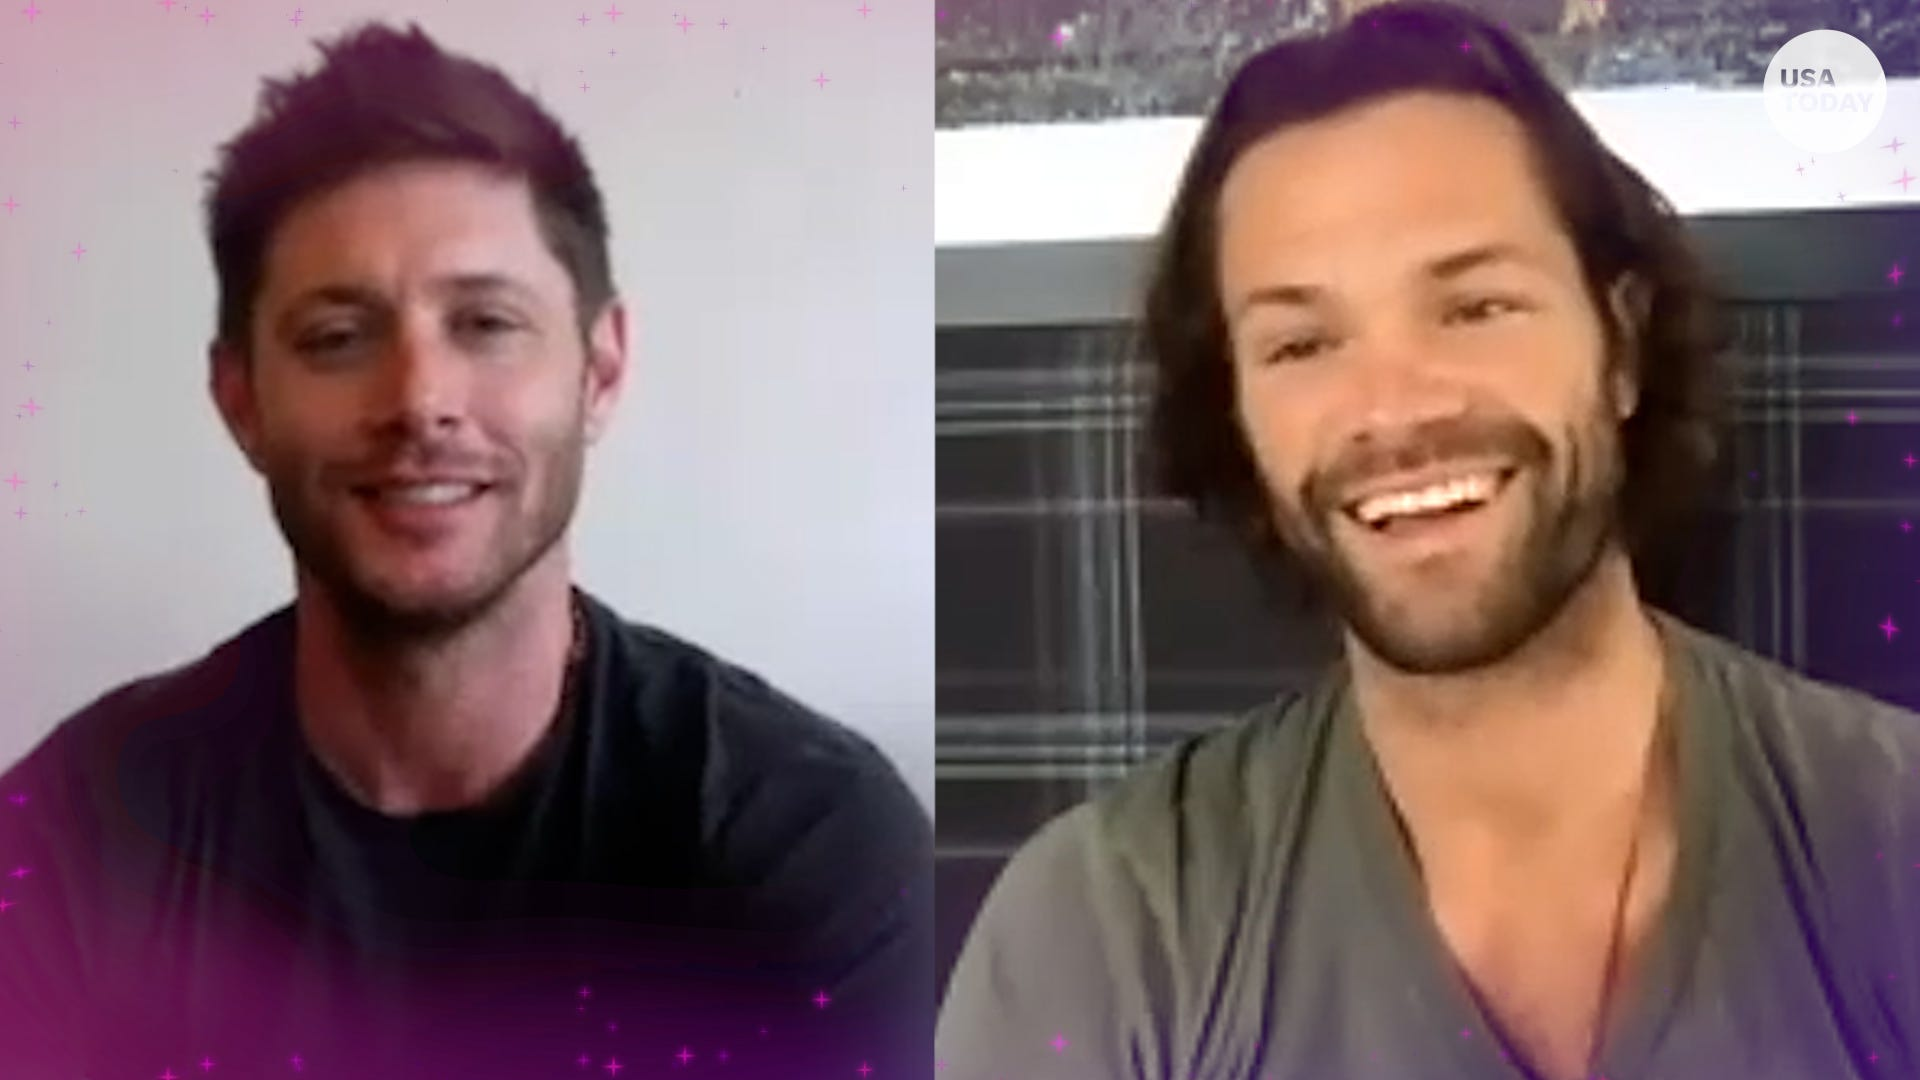 'Supernatural' stars Jensen Ackles and Jared Padalecki on the show's final day